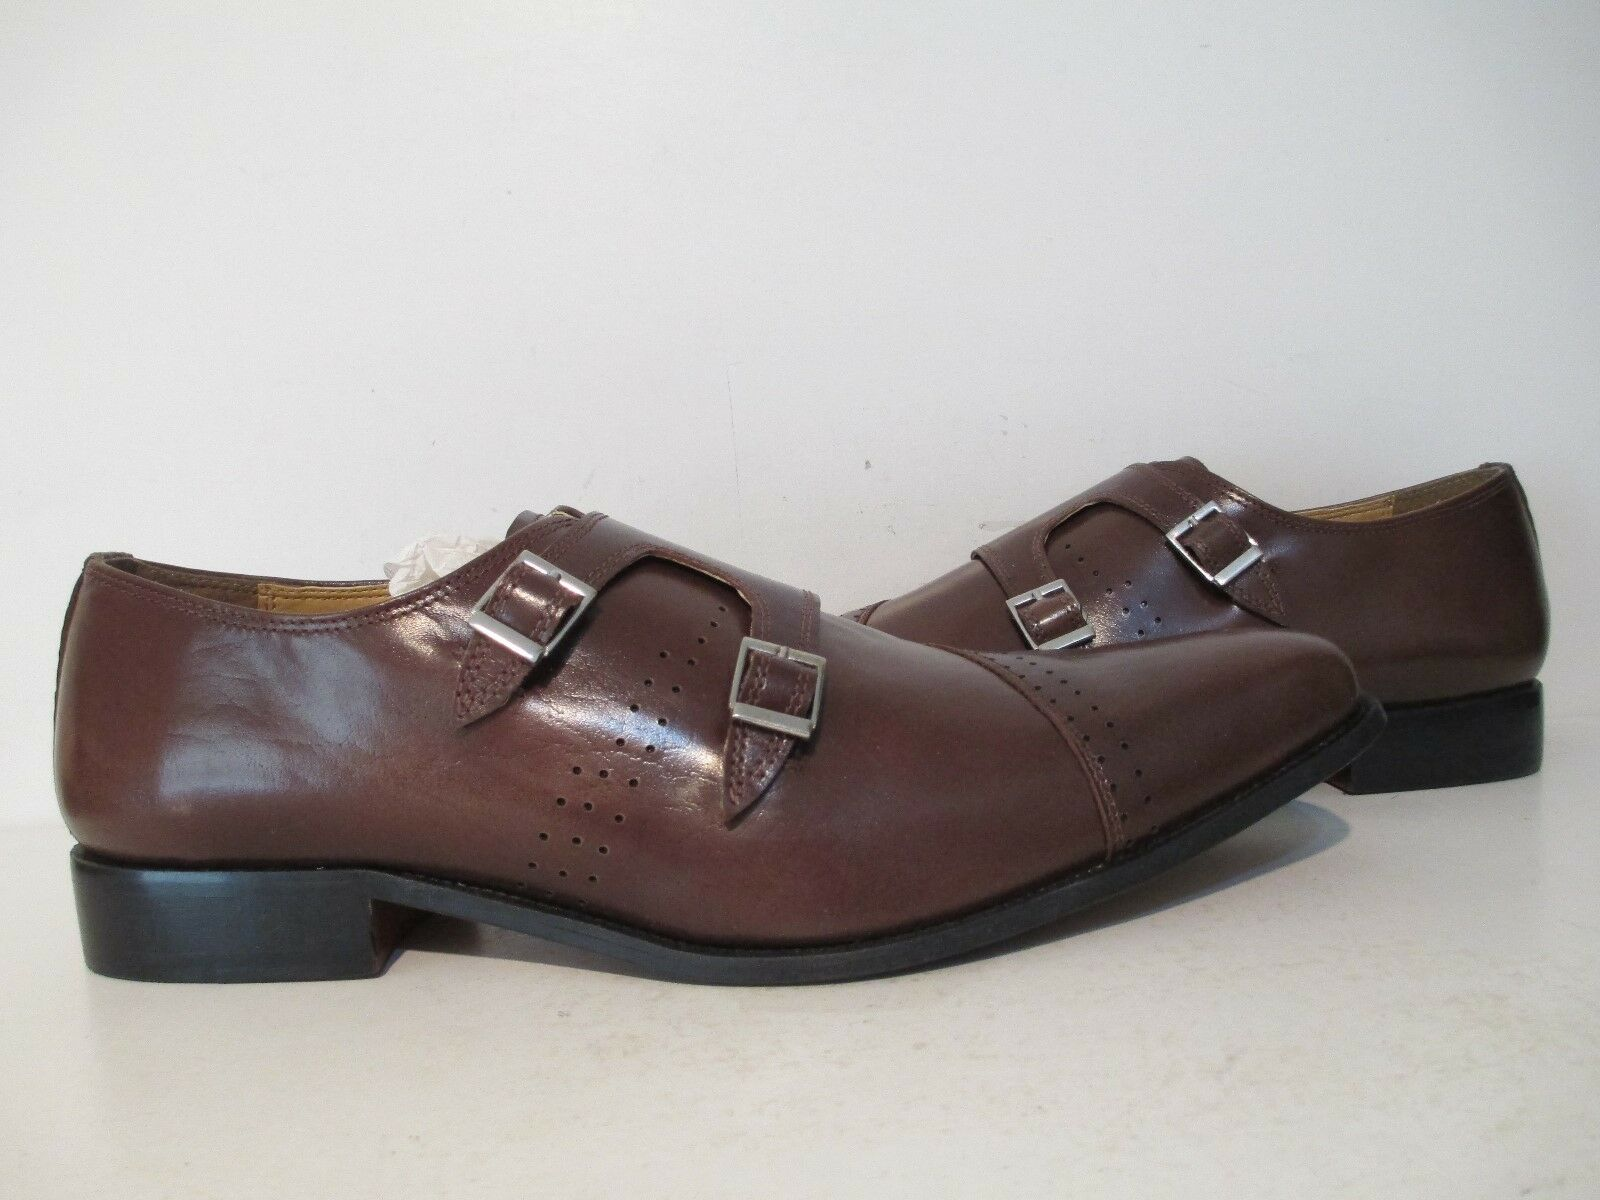 Giorgio Brutini Mens Carbonne Leather Double Monk Monk Monk Loafer Dress schuhe braun 13 M 0d8fa7